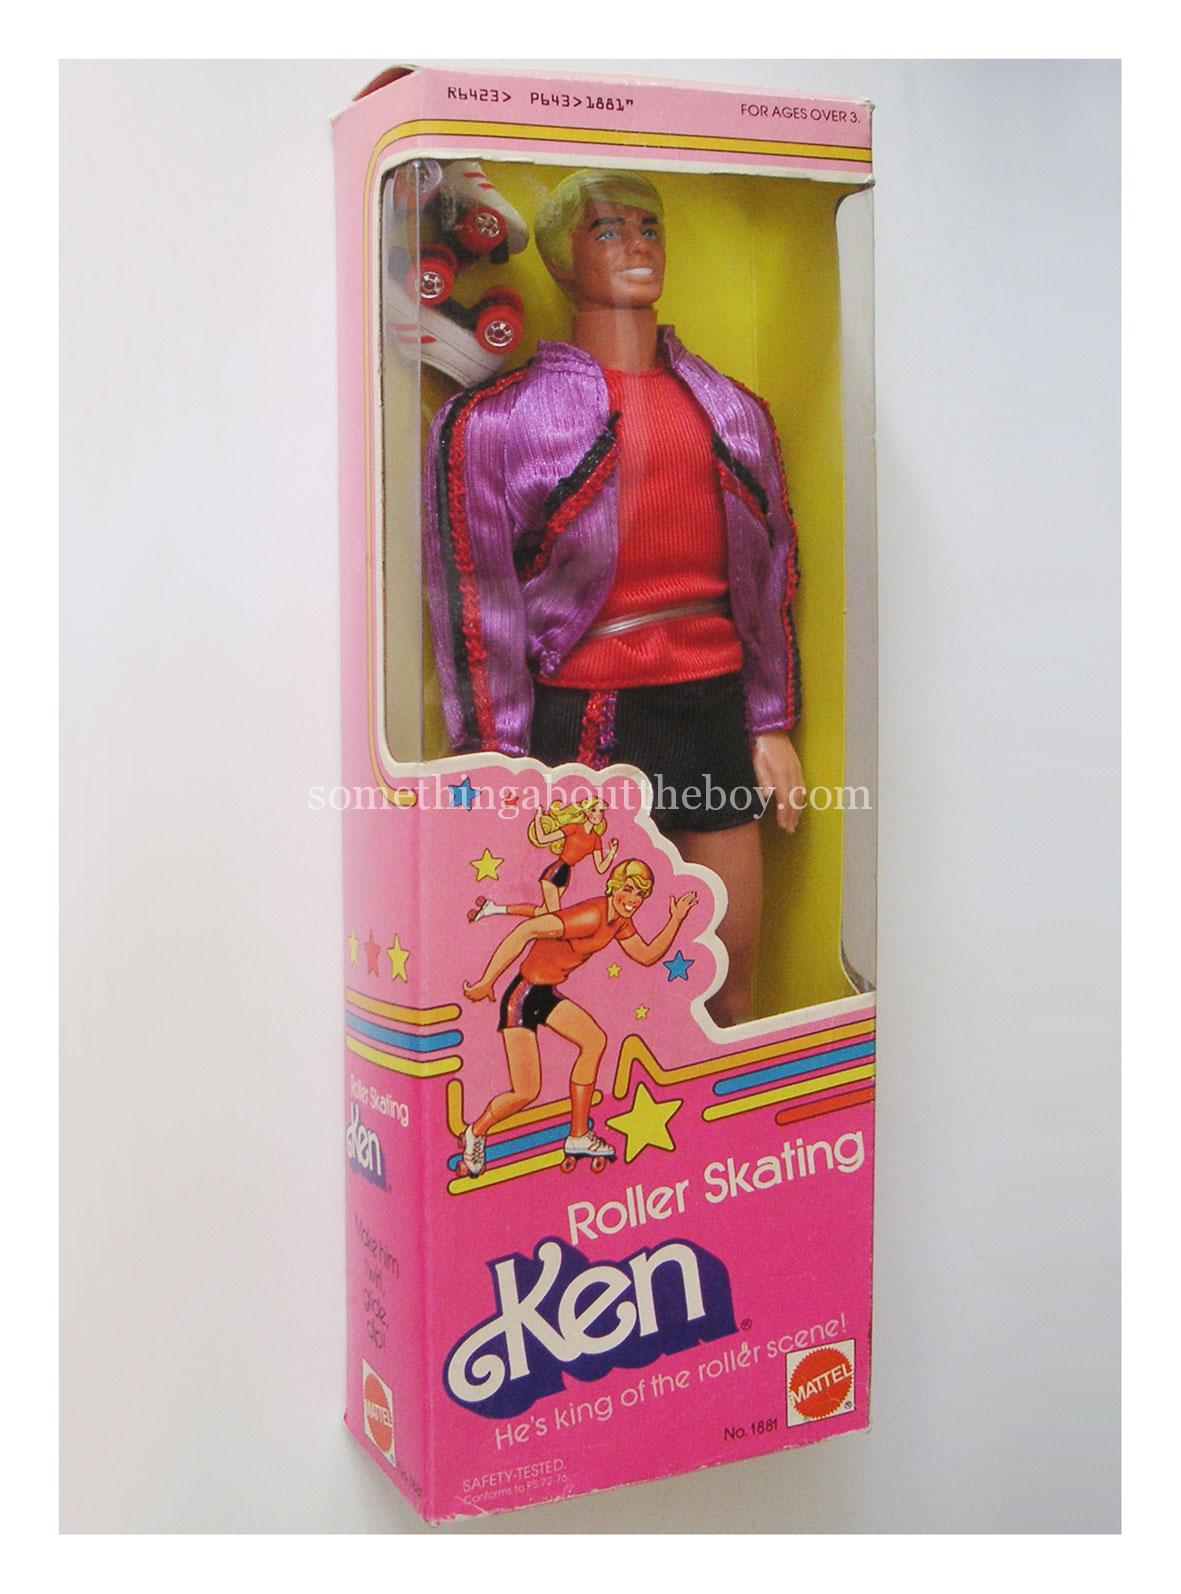 1980 #1881 Roller Skating Ken in original packaging